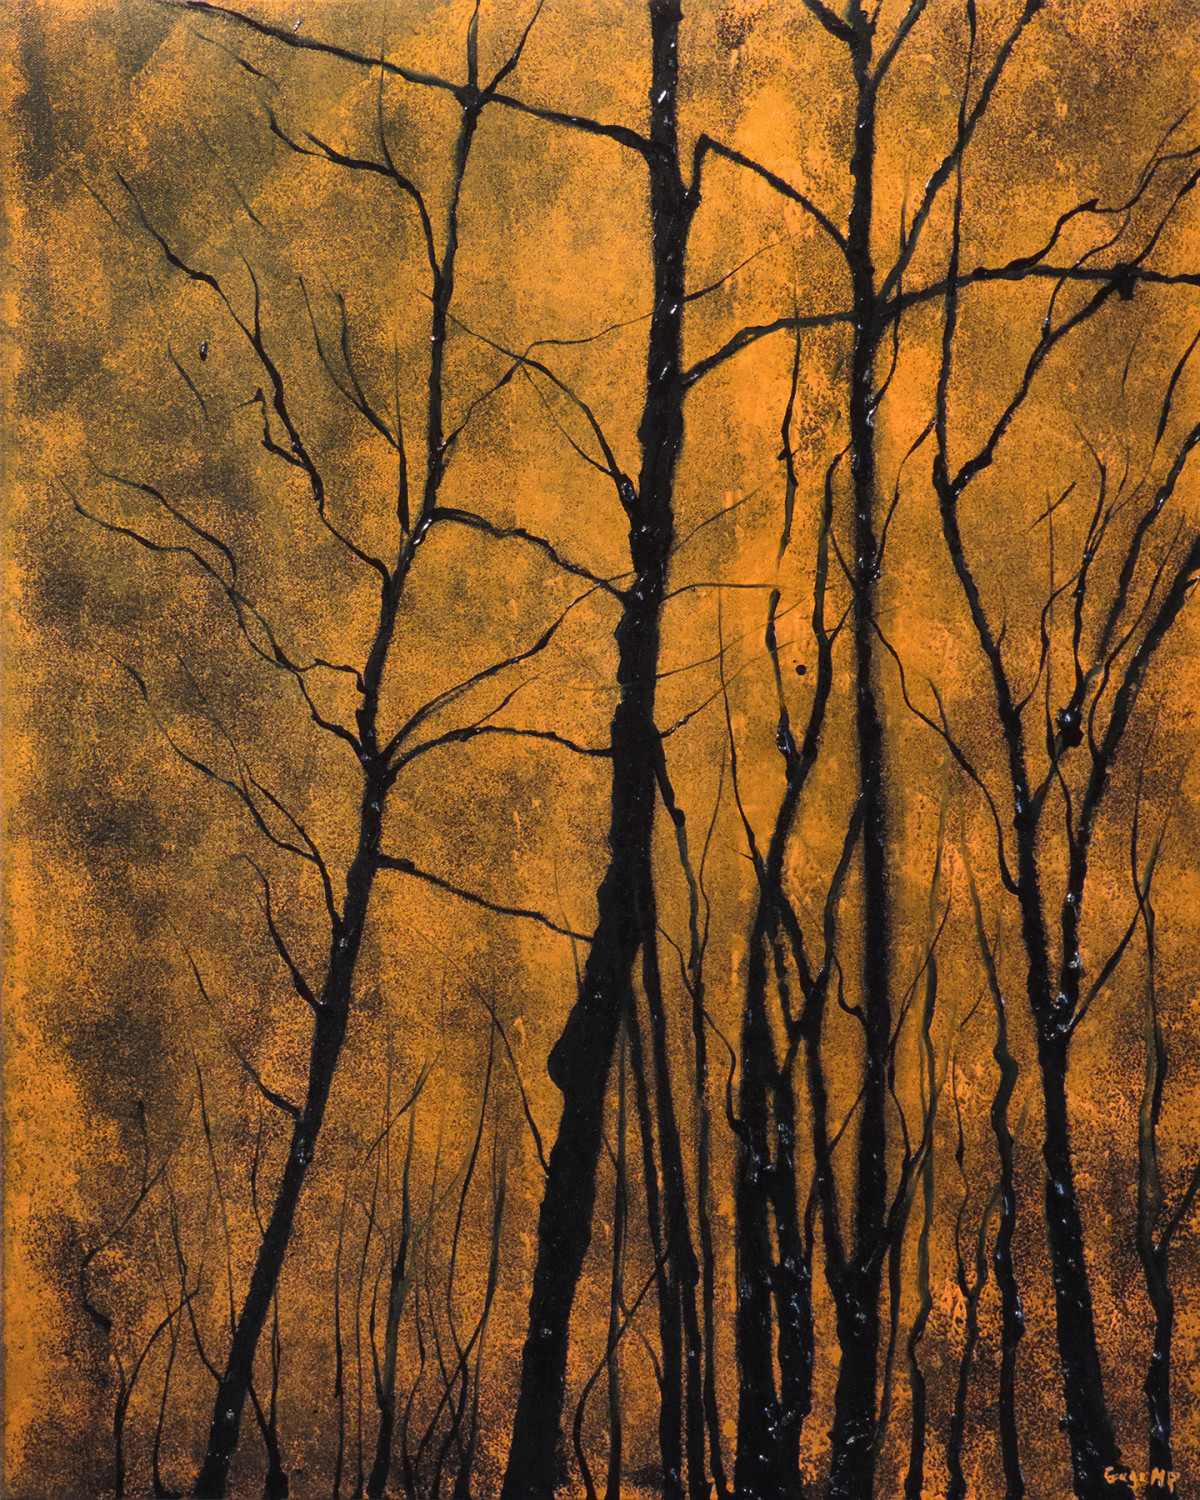 Lincoln Woods 15 - October - Oil on Canvas - 24 x 30